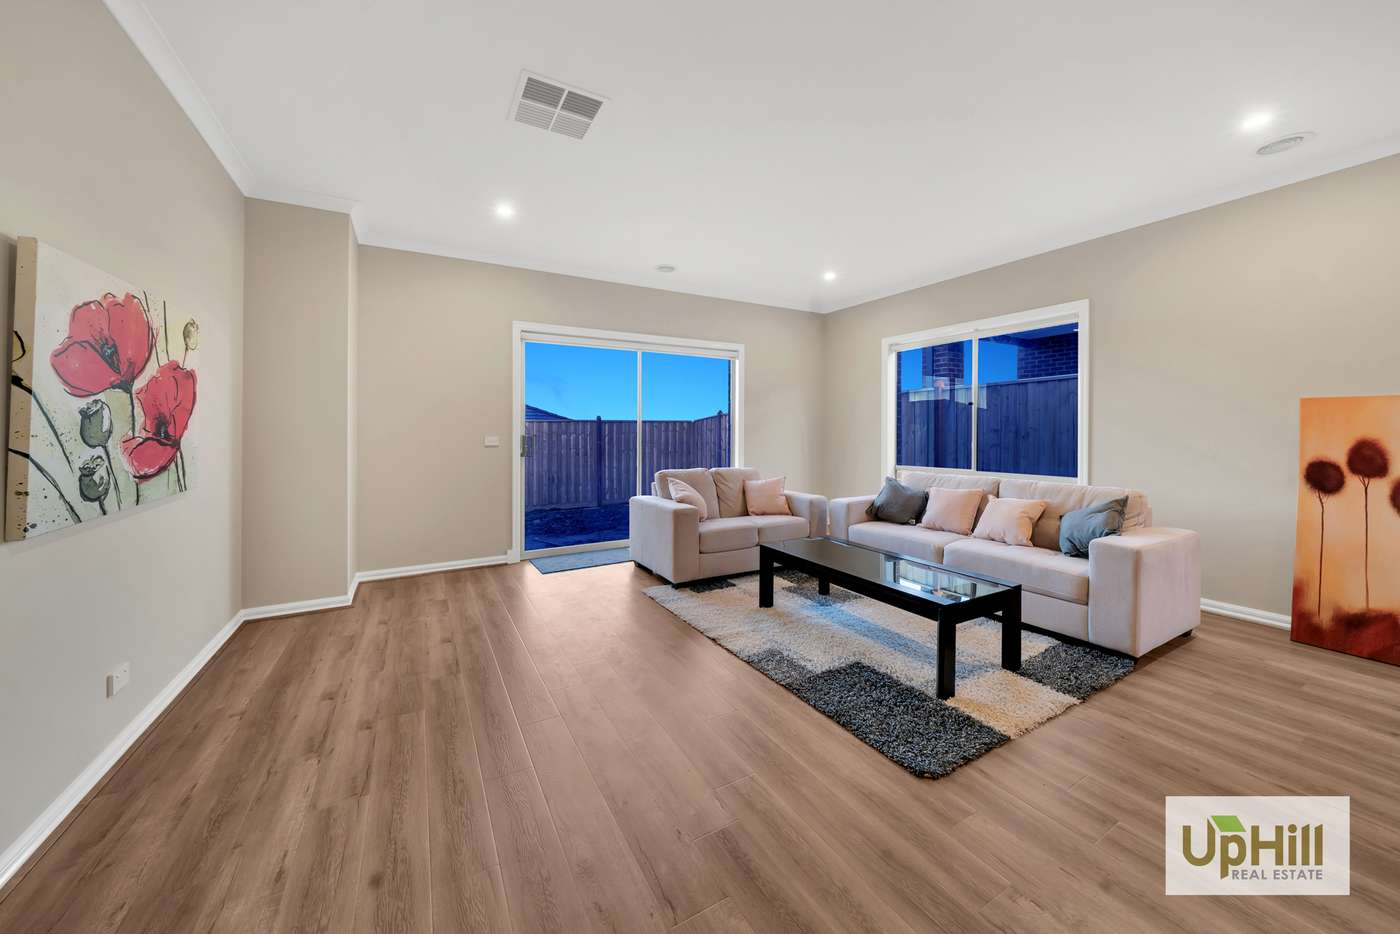 Sixth view of Homely house listing, 35 CATTEES STREET, Clyde North VIC 3978